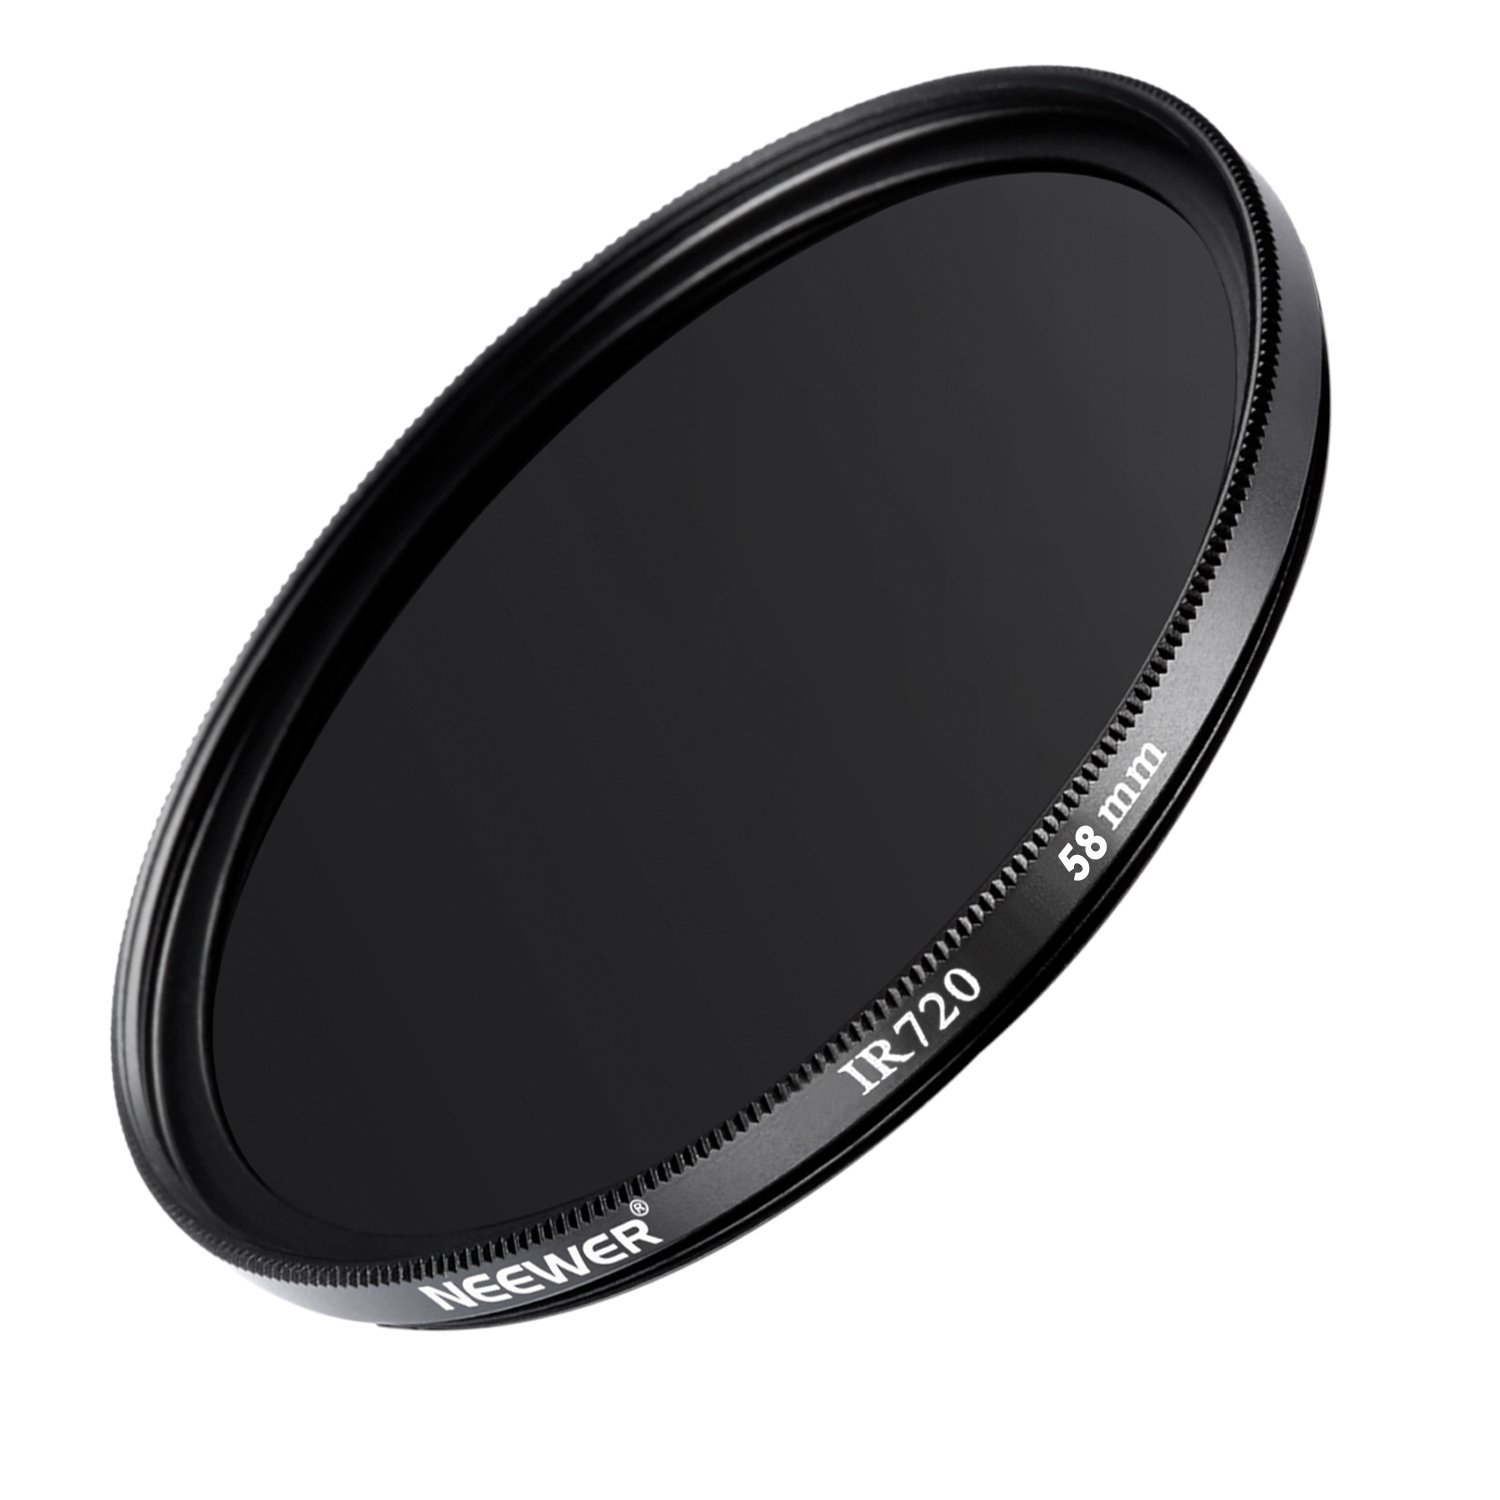 NEEWER 58MM - IR720 Infrared Filter - for Canon EOS Rebel T2i + ANY DSLR/SLR Camera with a 58MM Filter Thread! by Neewer